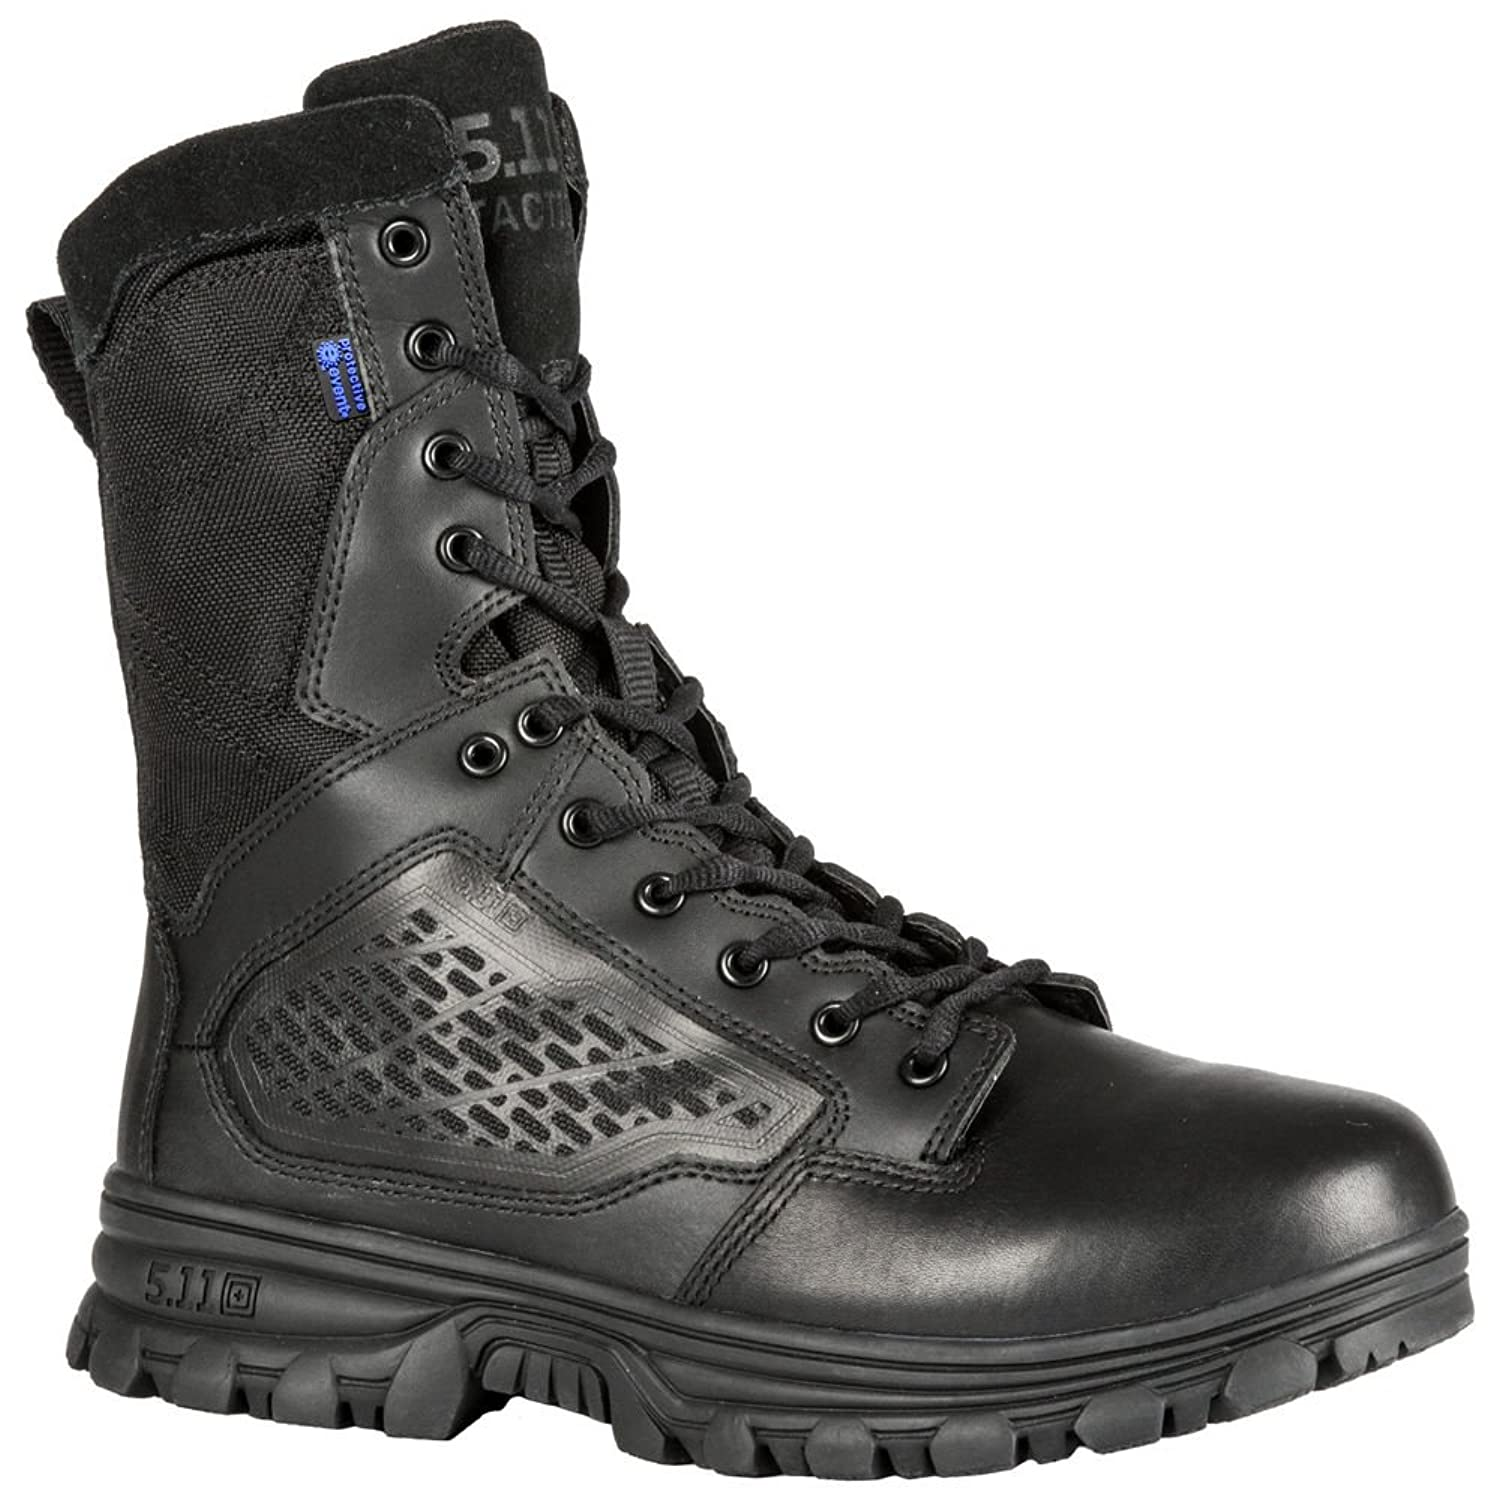 "5.11 Men's Evo 8"" Insulated Side Zip Military and Tactical Boot"